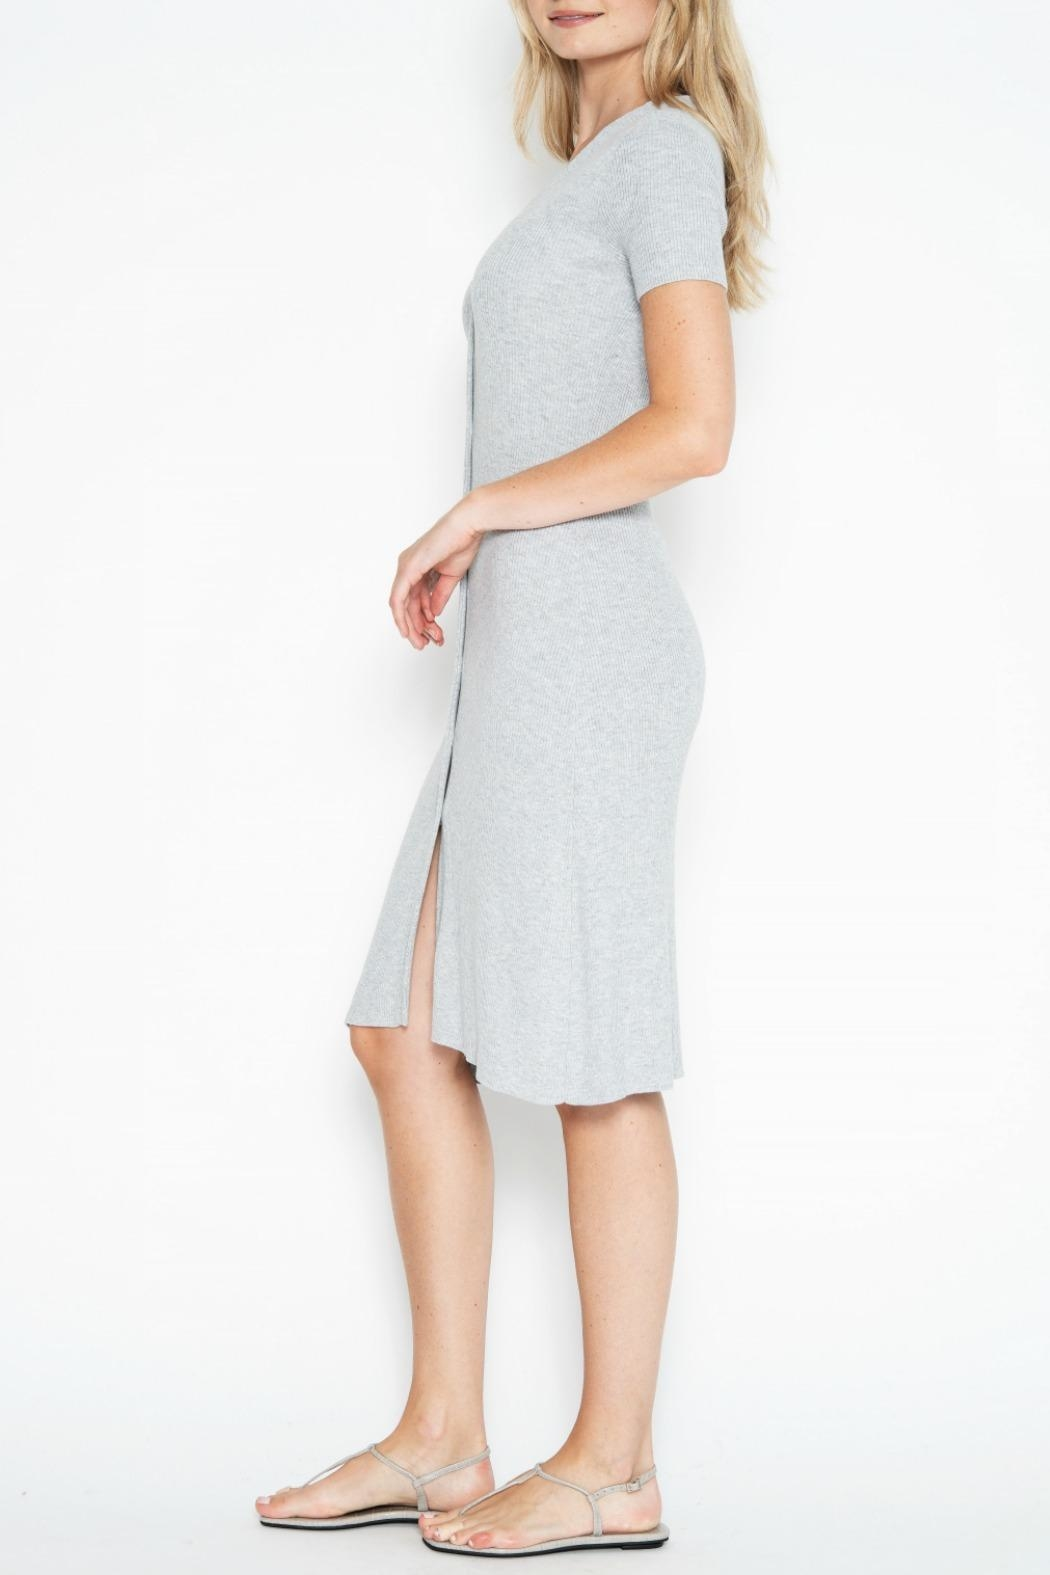 One Grey Day Quentin Dress - Front Full Image